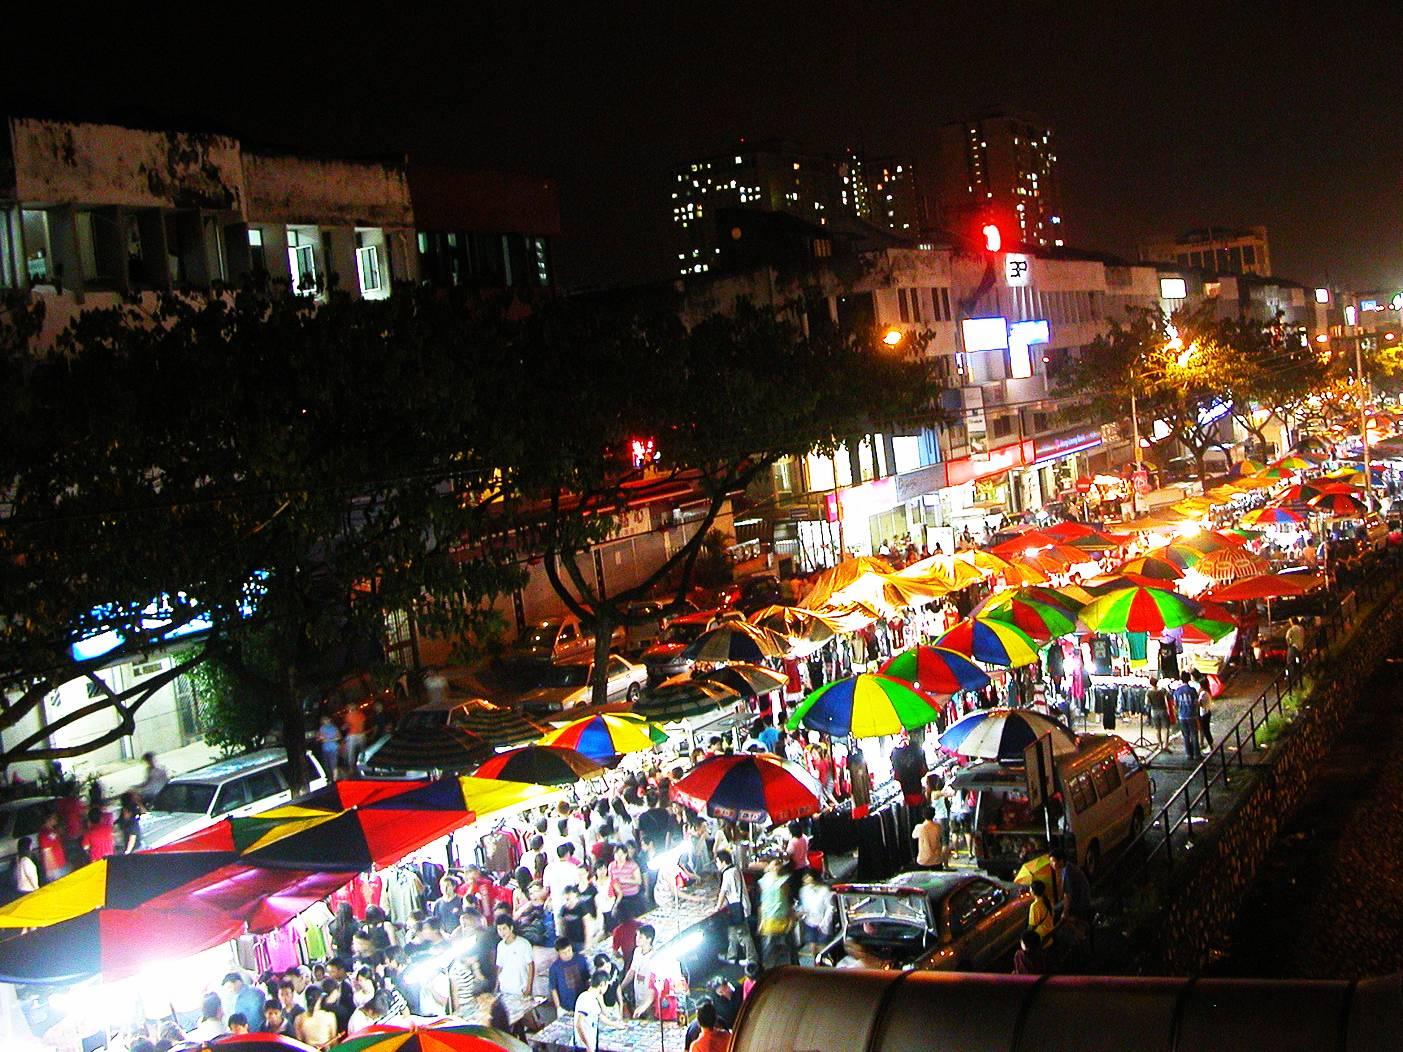 night market in malaysia The night market one of the most interesting places in malaysia is the night  market you may visit and experience the night market yourselves both locals  and.